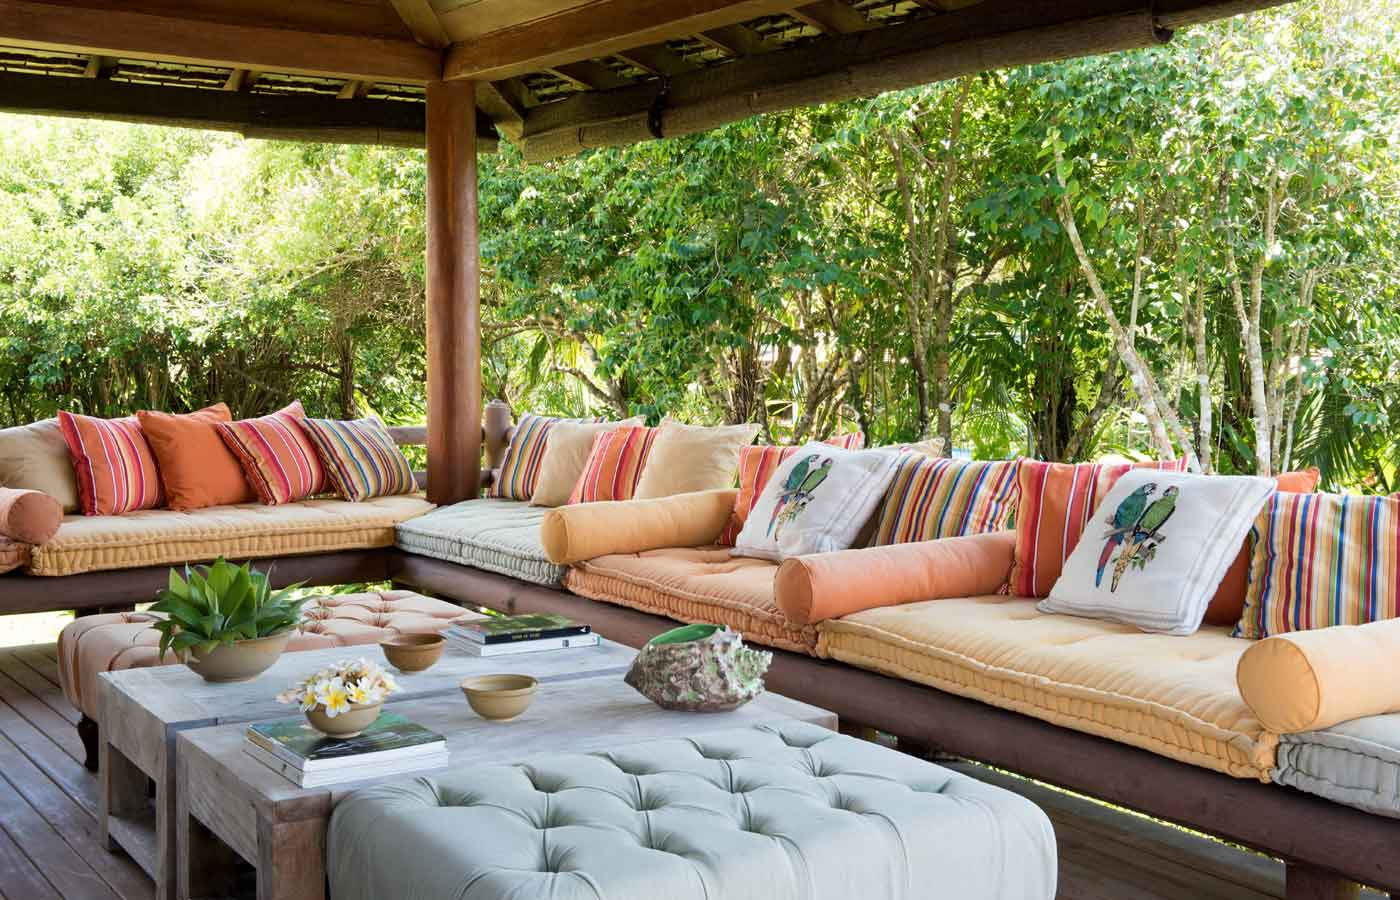 A shared outdoor seating area perfect for relaxation at Pousada Tutabel in Trancoso, Bahia, Brazil.